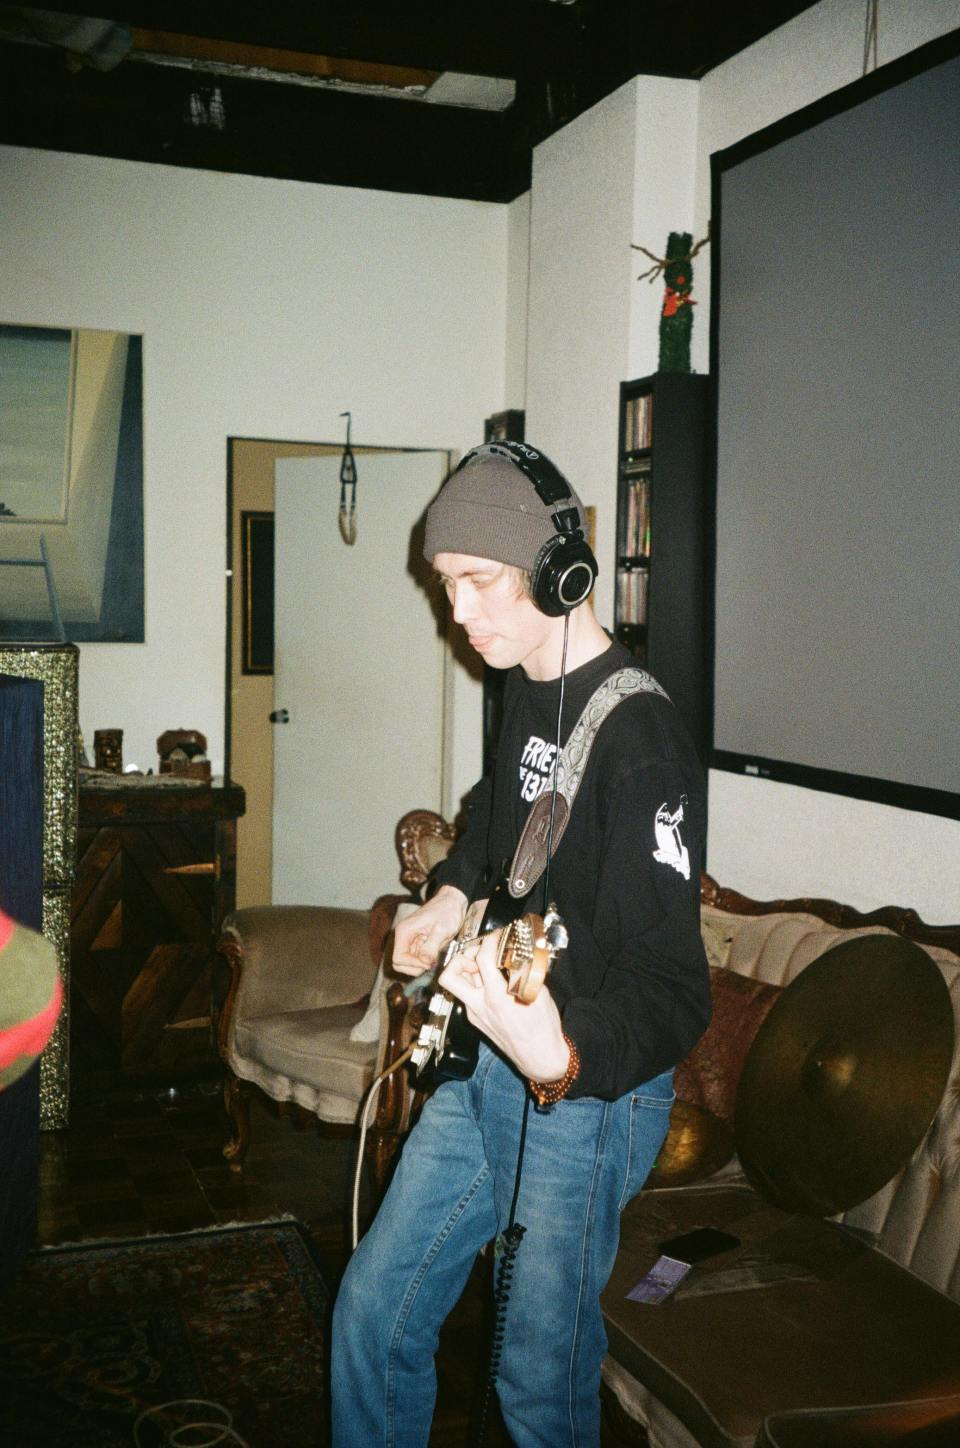 Sean-Recording-Winters-of-My-Youth.jpg